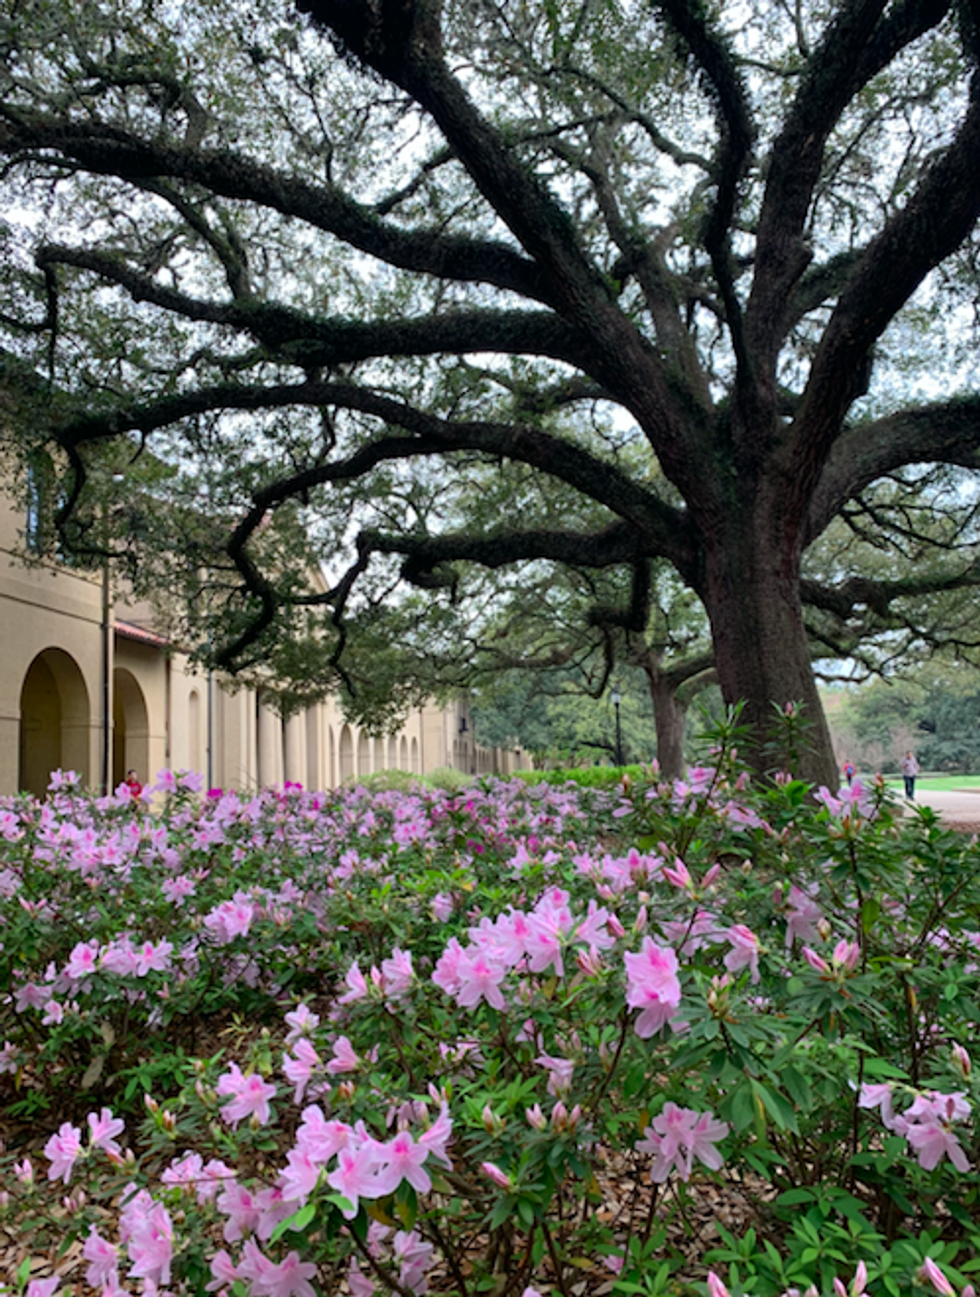 10 LSU Buildings That ACTUALLY Need To Be Fixed, Unlike The Bell Tower